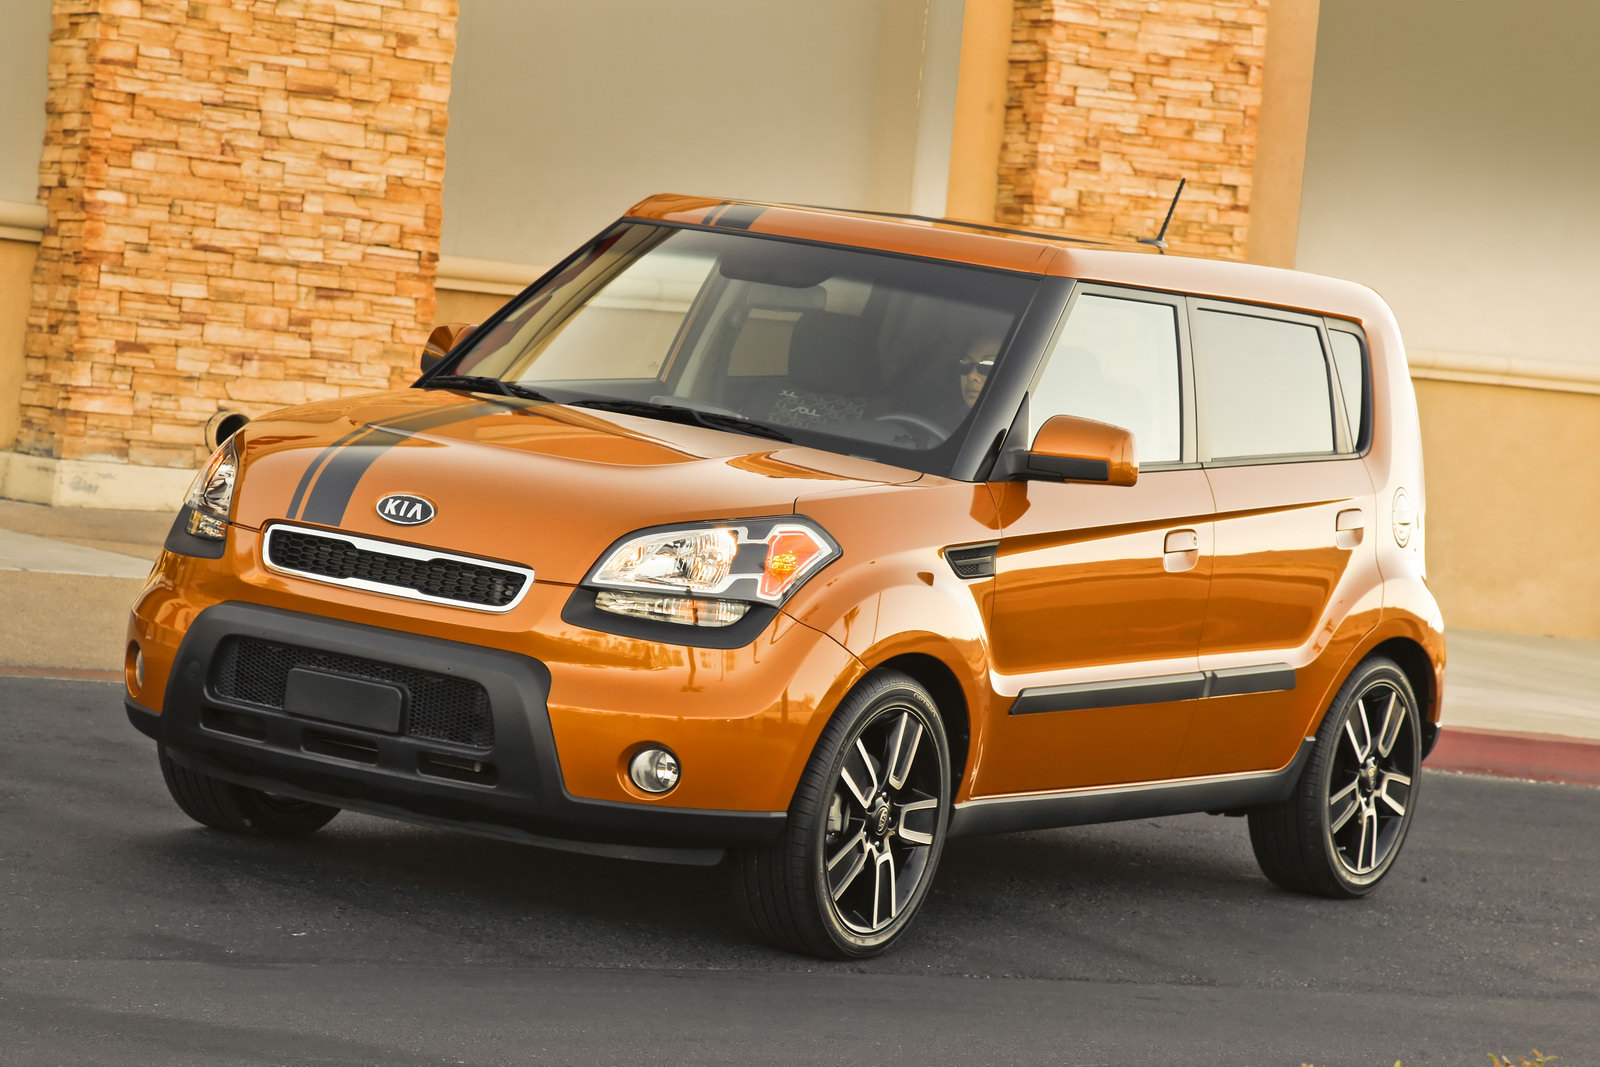 Limited-Edition 2010 Kia 'Ignition' Soul Rolls Into Showrooms on